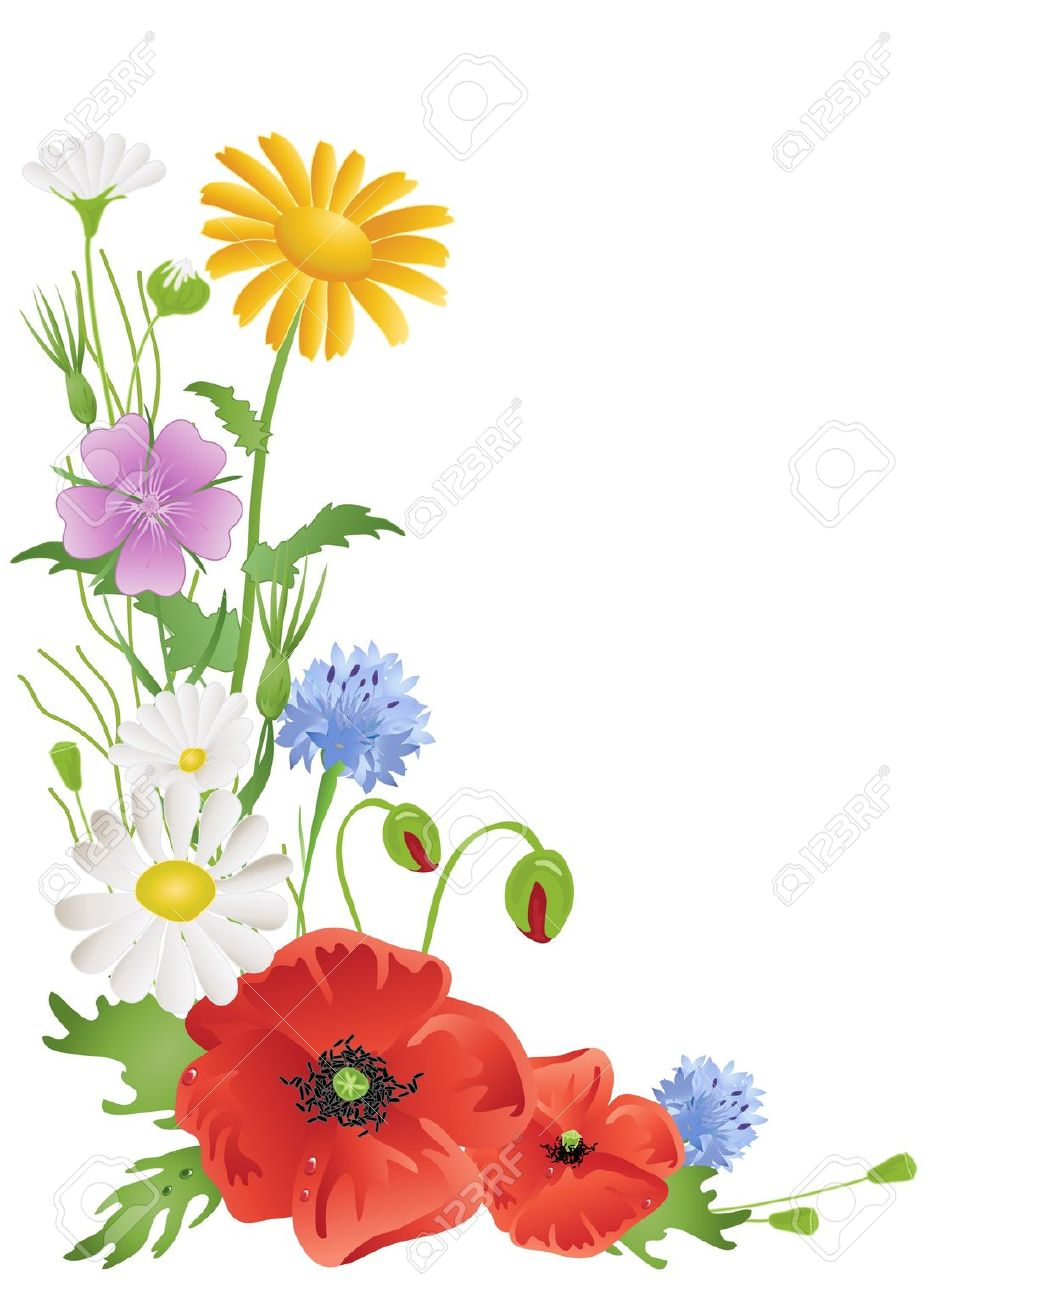 Wildflower clipart images clip royalty free stock 75+ Wildflower Clipart   ClipartLook clip royalty free stock